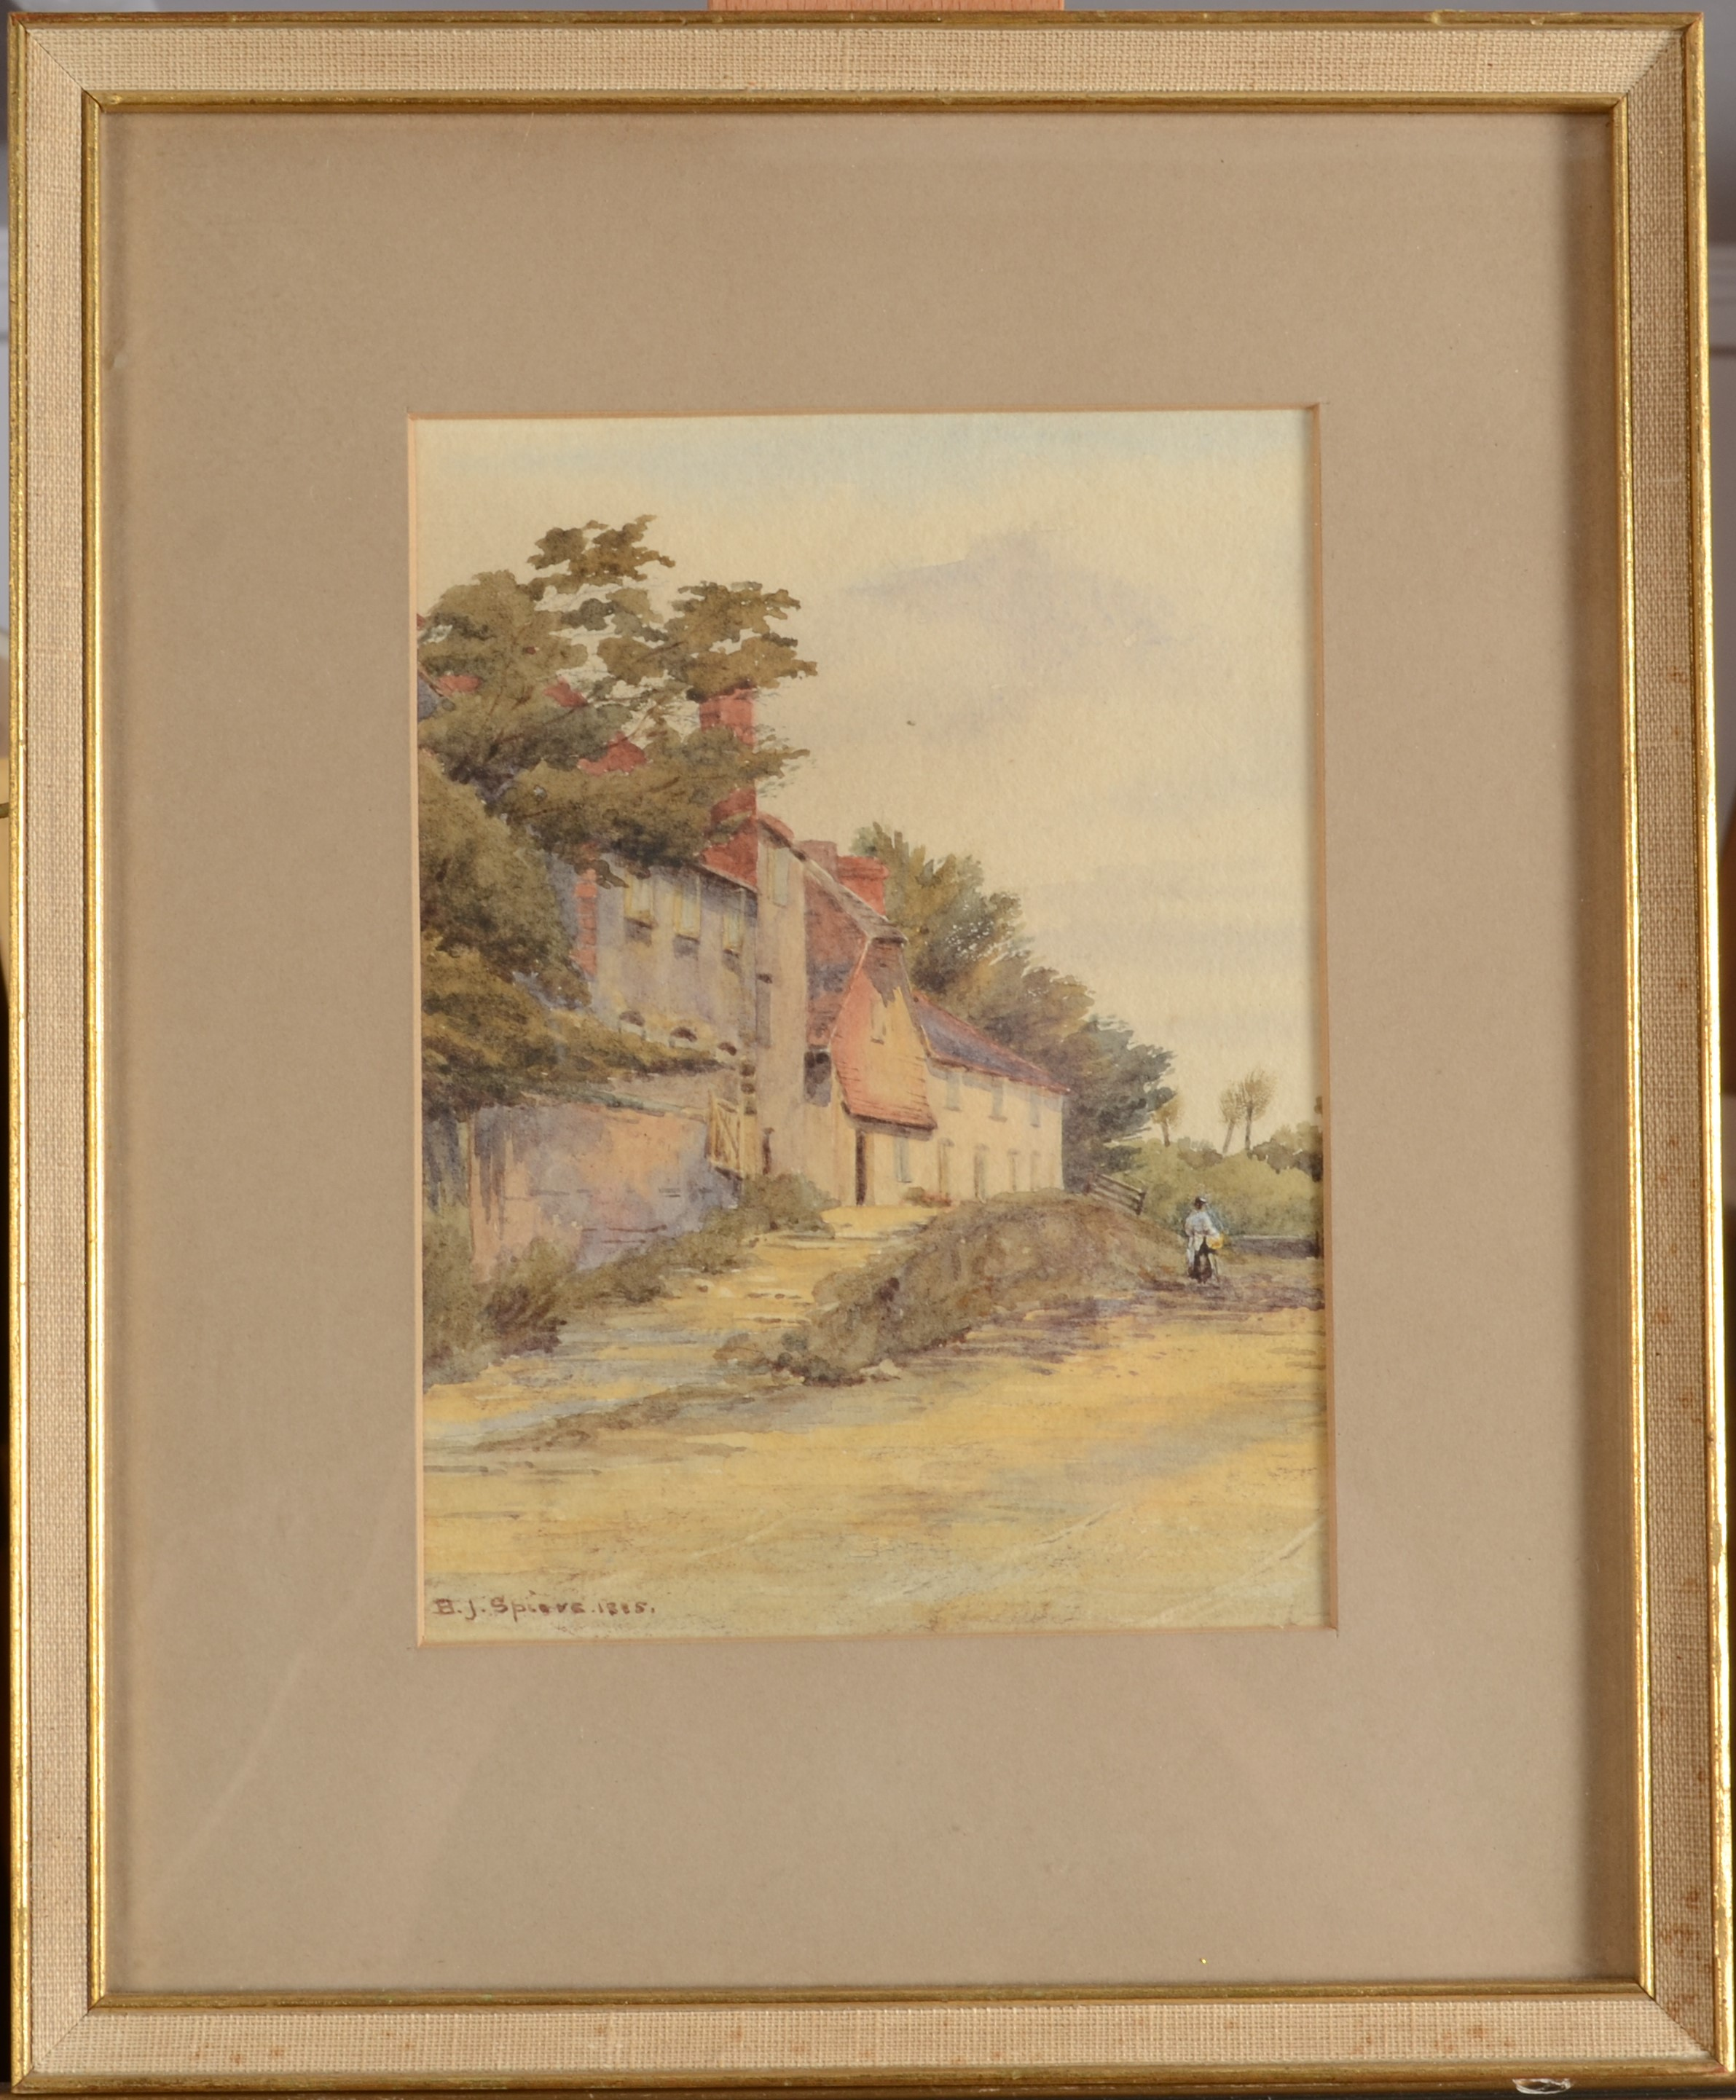 Lot 41 - BESSIE J SPIERS A Rural Scene Watercolour Signed and dated 1815 16 x 12 cm